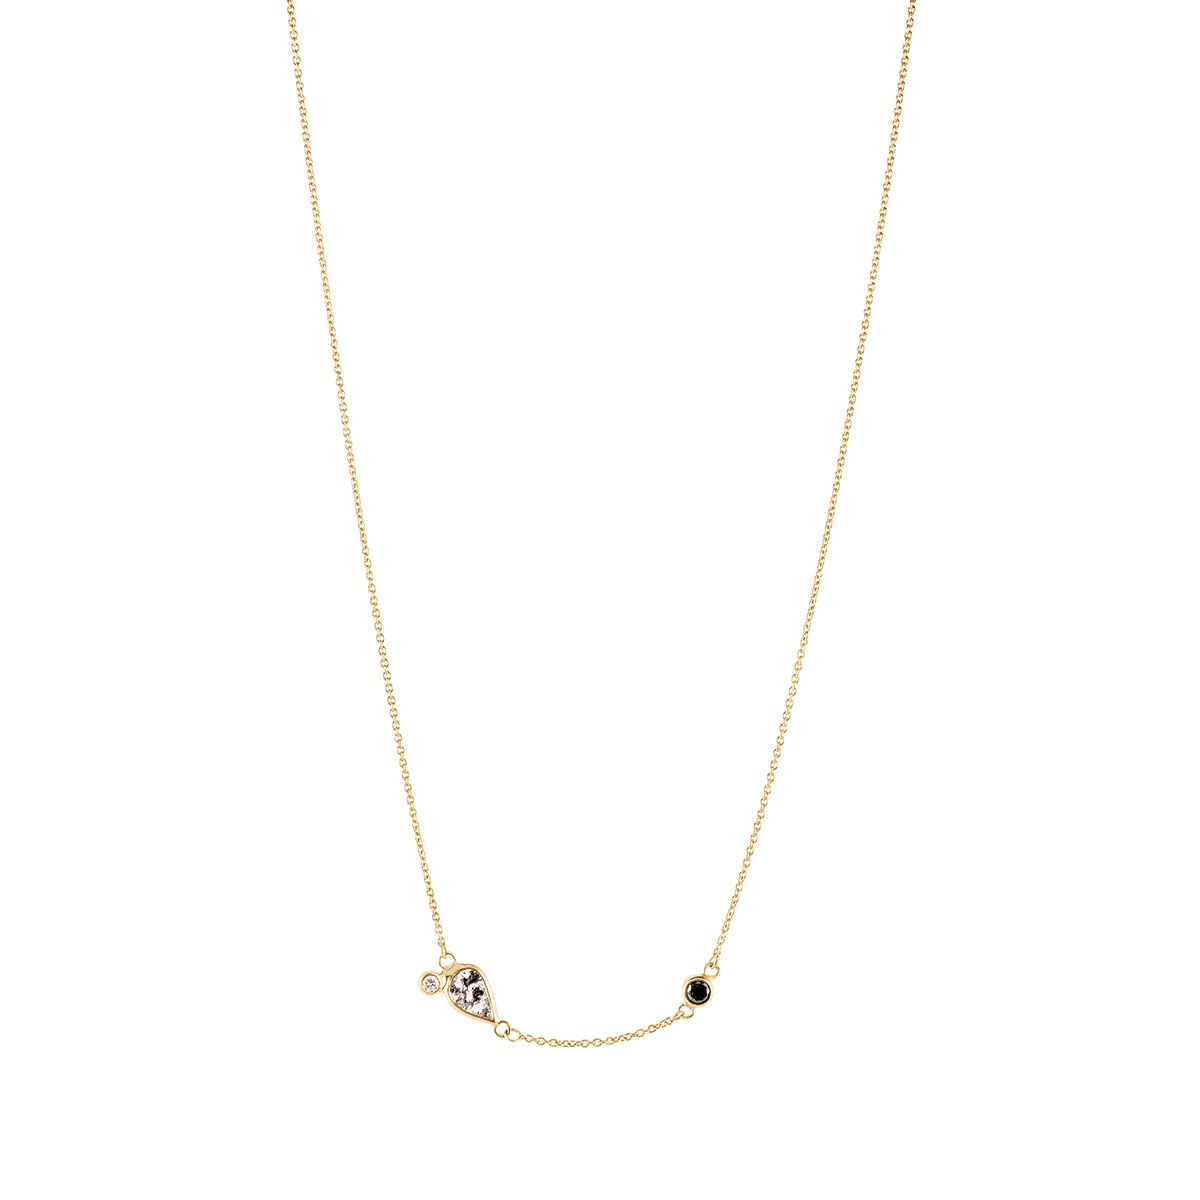 Meredith Young Jewelry Storm Diamond Necklace